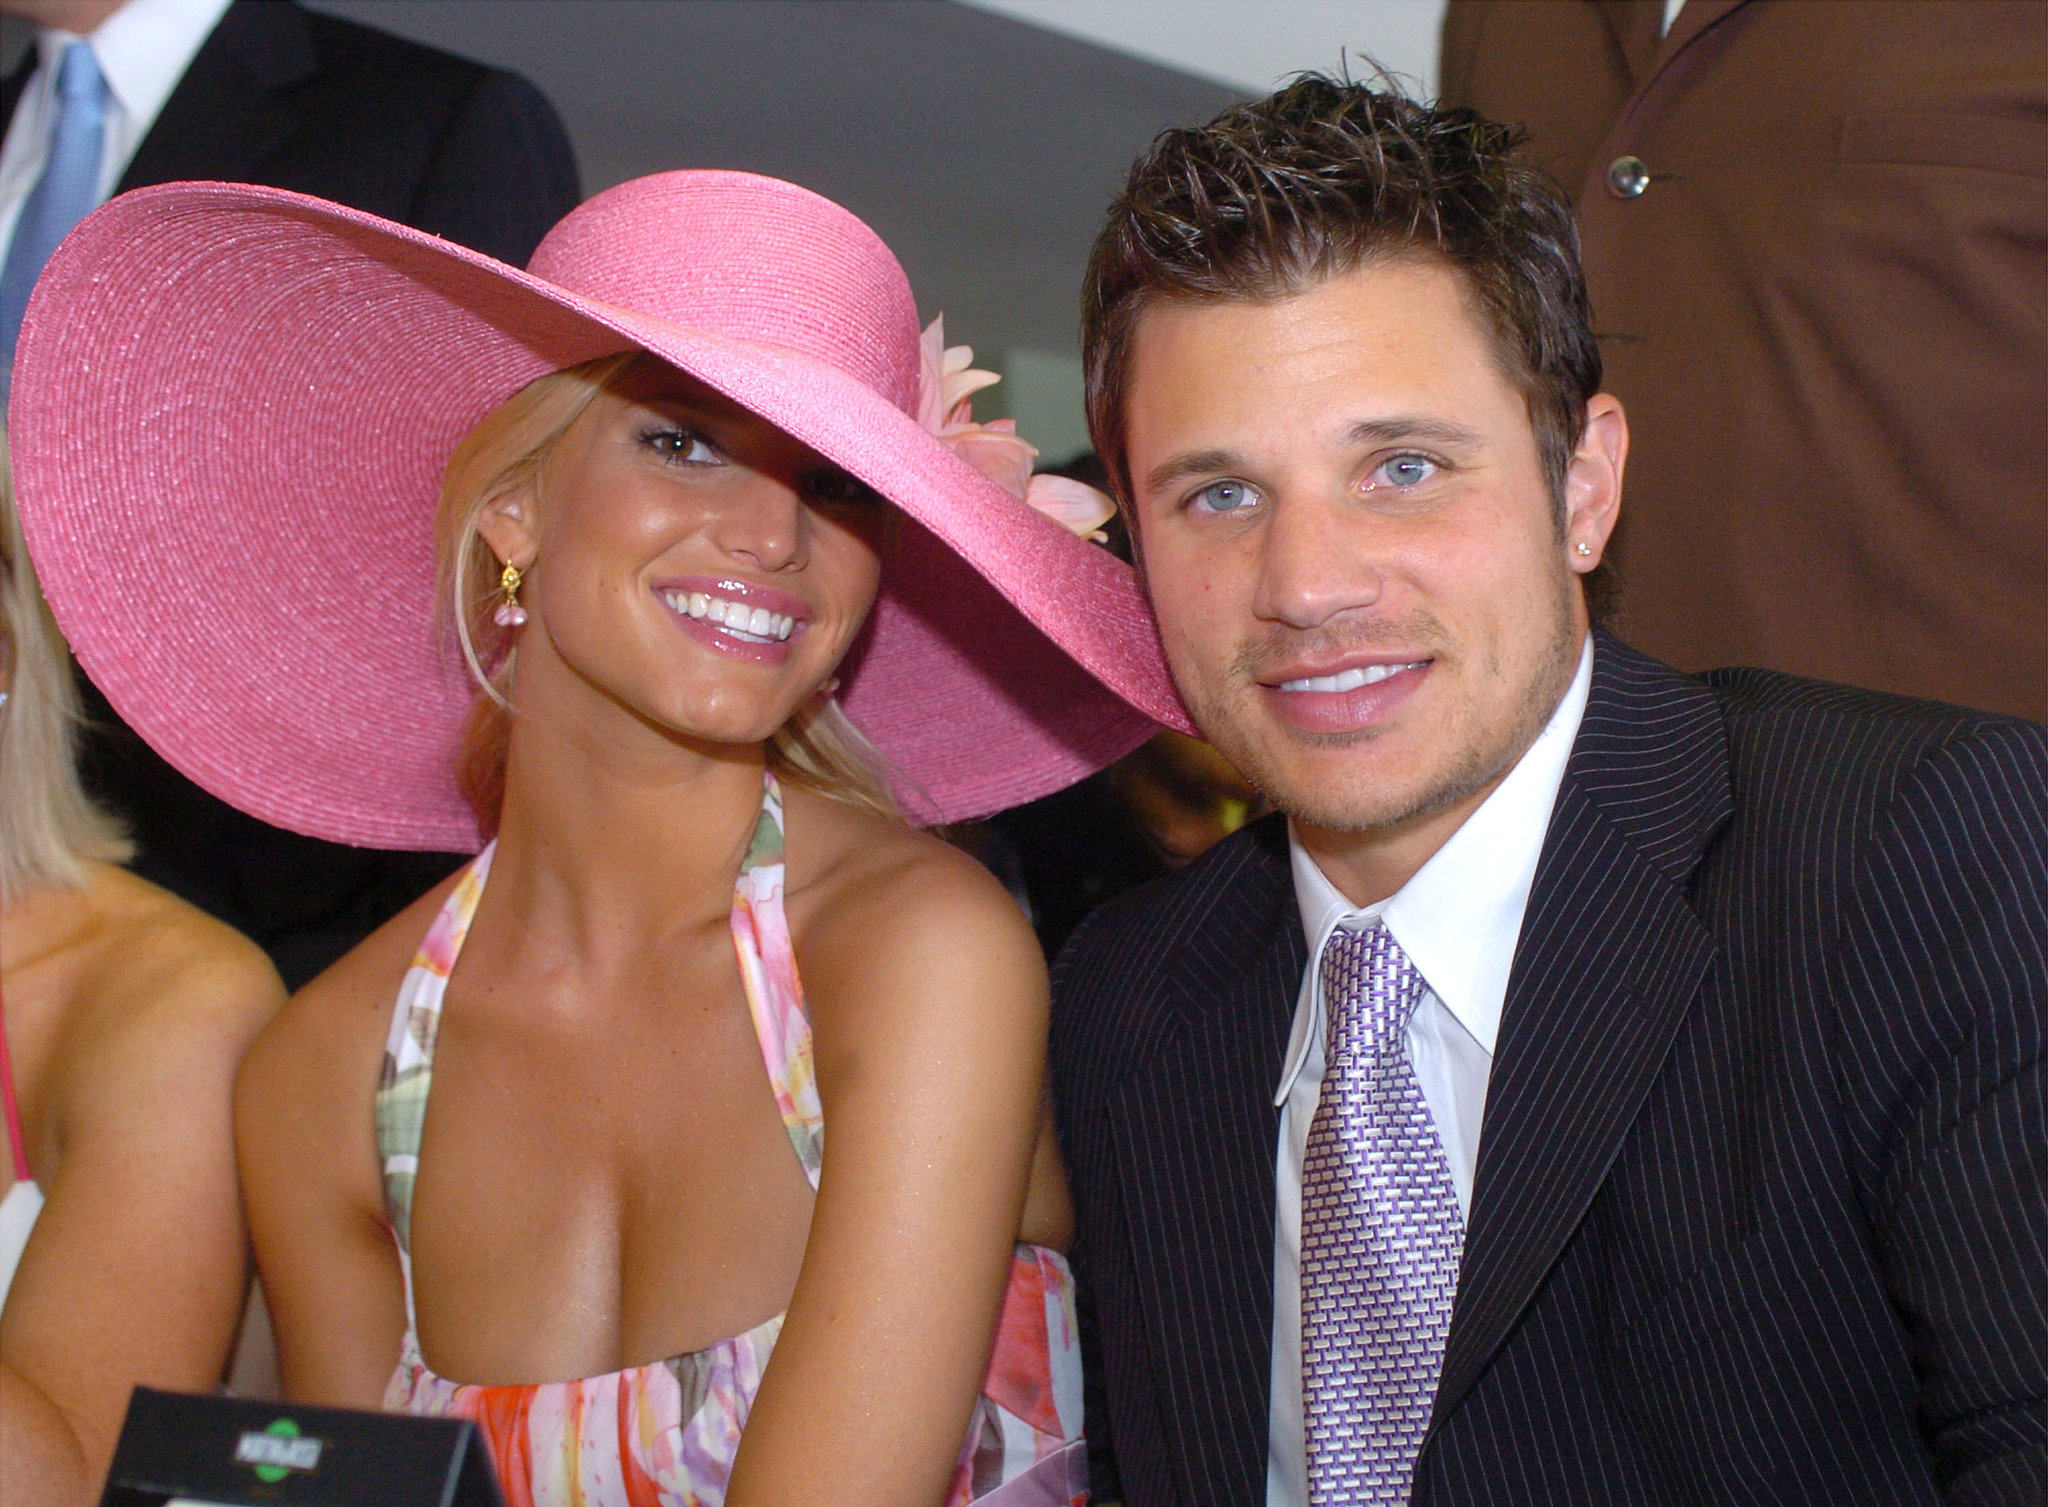 Jessica Simpson and Nick Lachey got in on the fun in 2004.